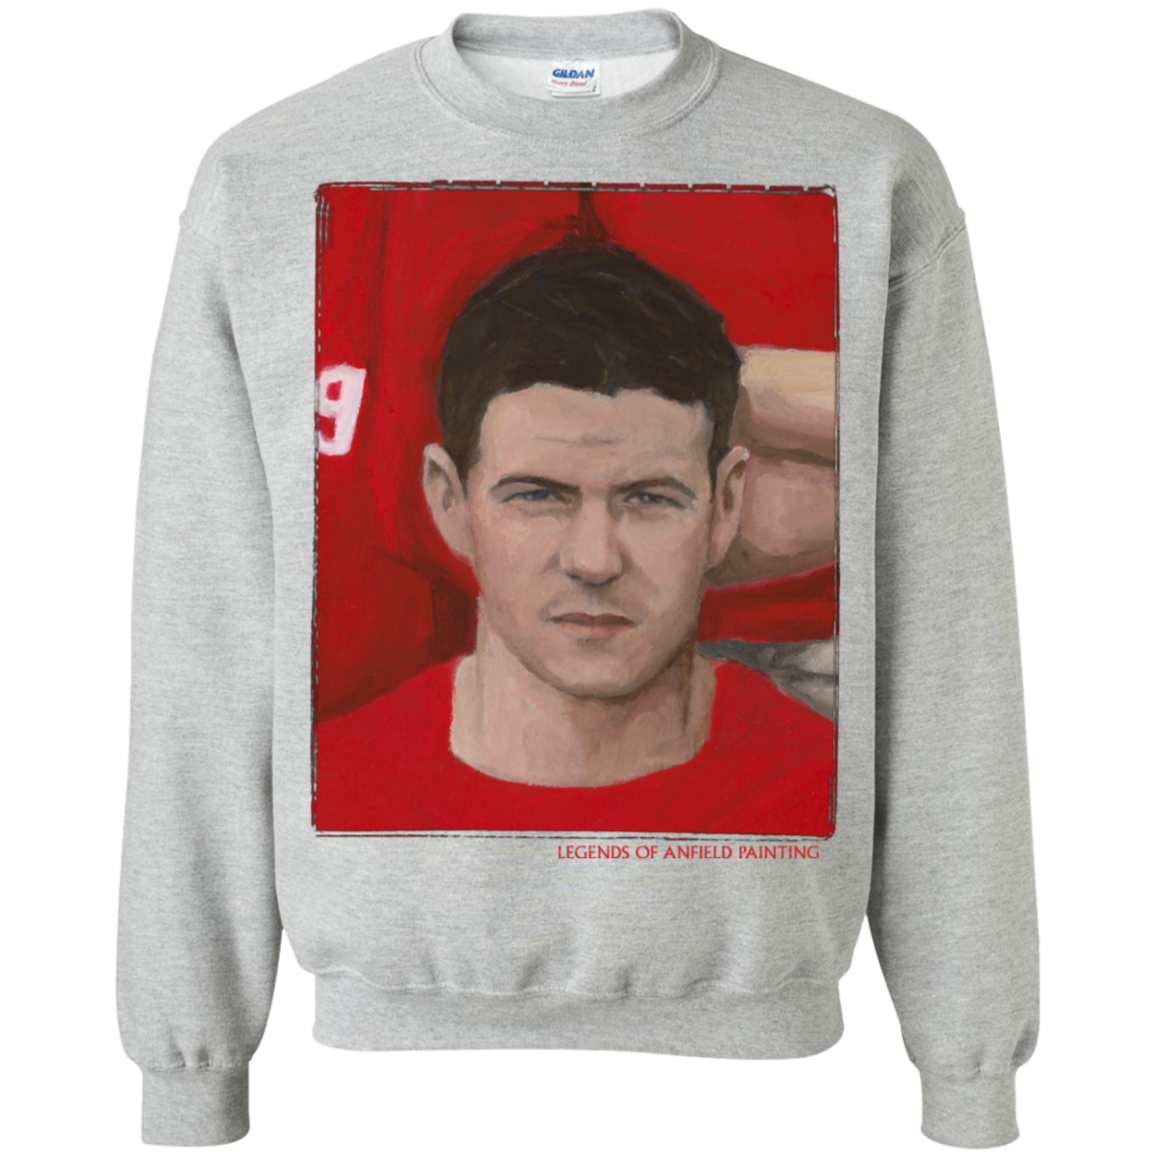 Legends Of Anfield Painting - Steven Gerrard Crewneck Pullover Sweatshirt  8 oz. - Legends of Anfield Painting